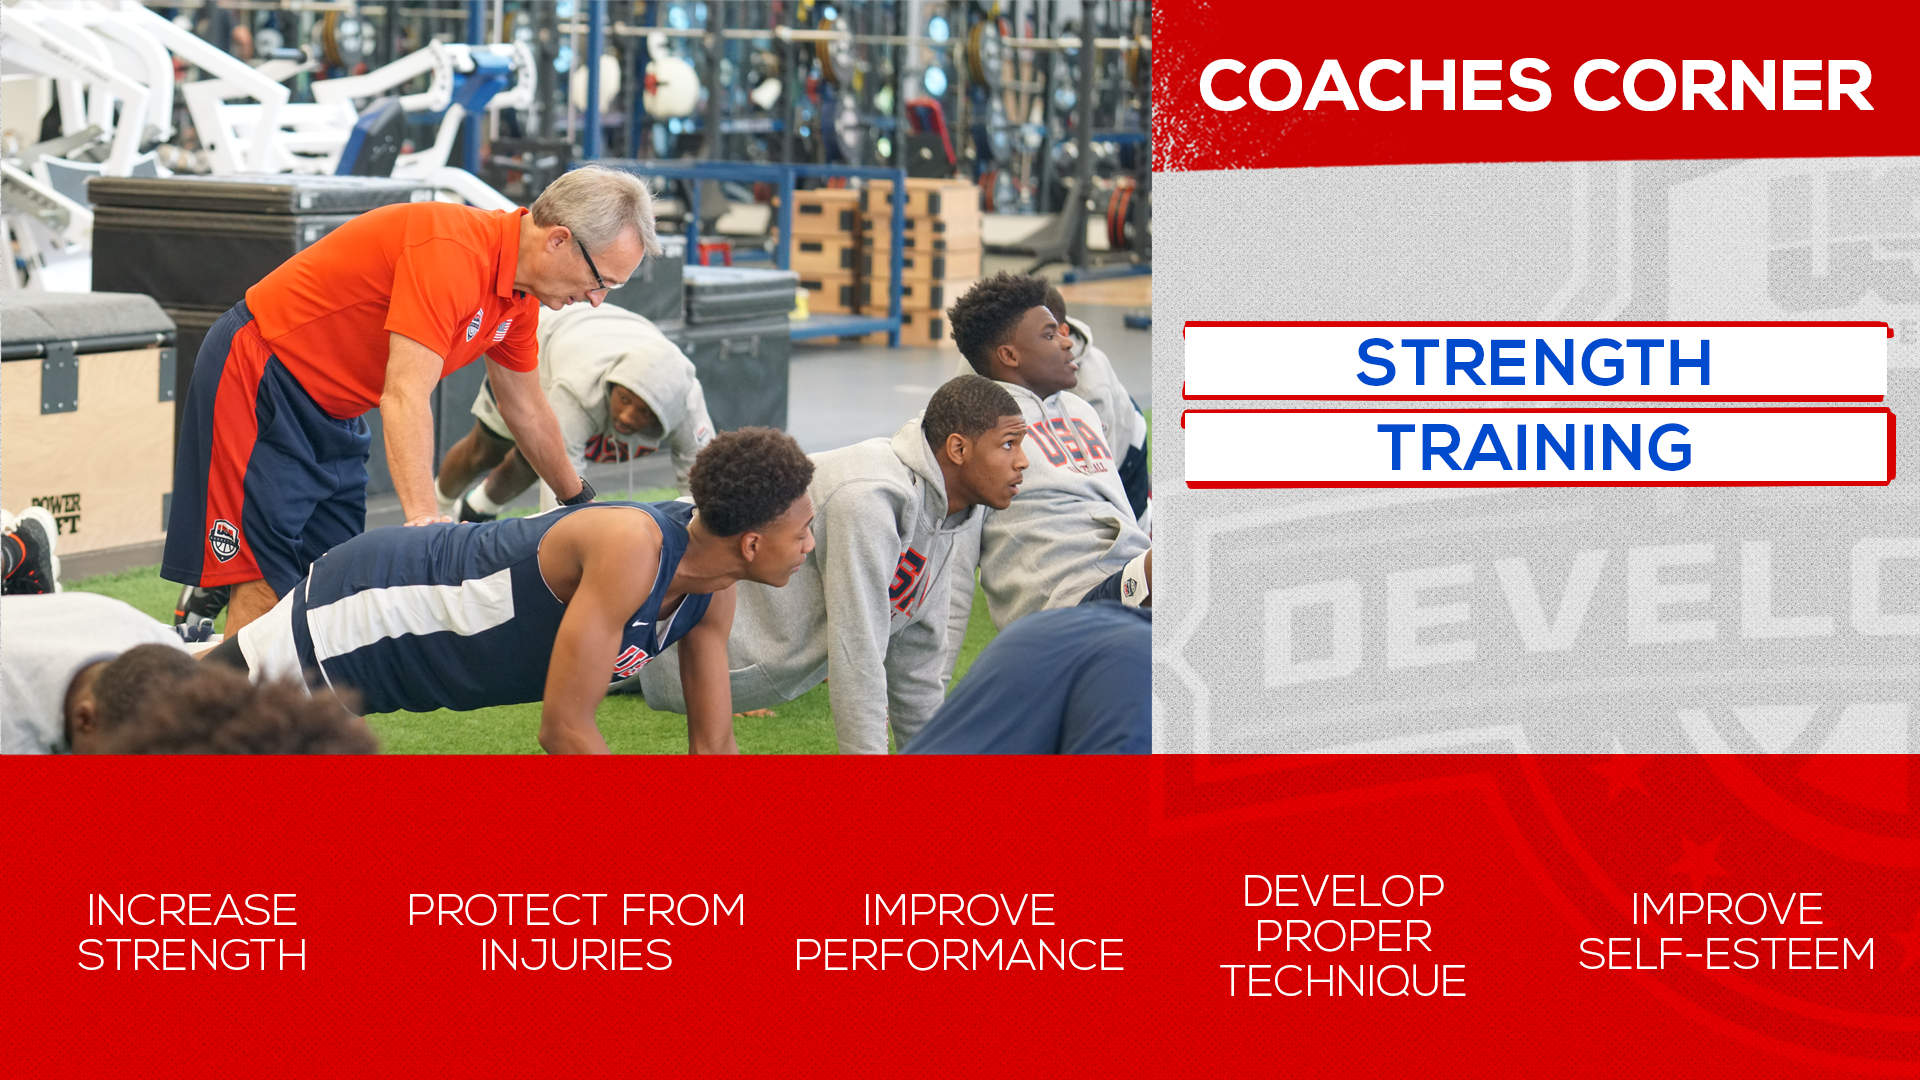 Coaches Corner: Strength Training